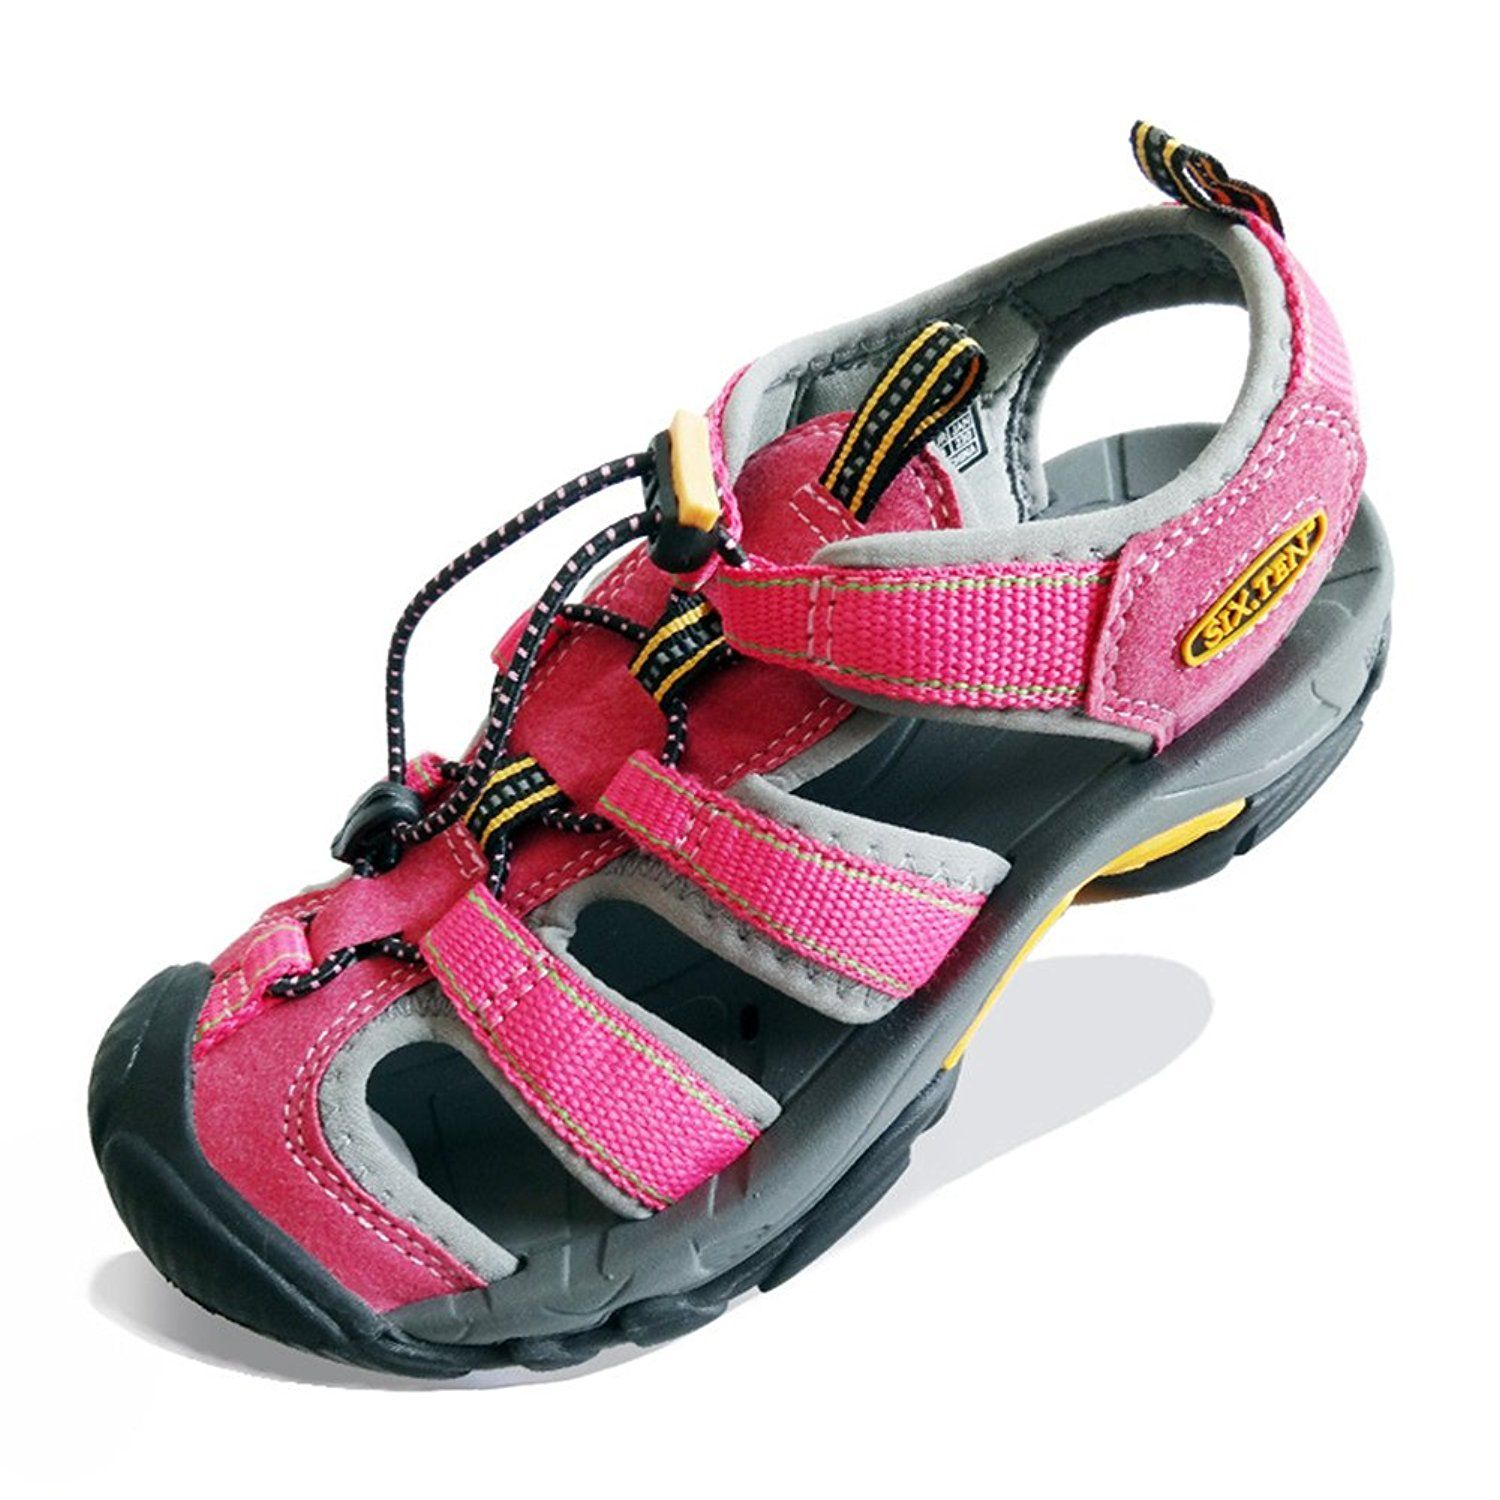 SIX.TEN Women's Outdoor Hiking Sport Sandals Closed-Toe Water Shoes =>  Additional info : Outdoor sandals | Water shoes, Mens summer shoes, Aqua  shoes